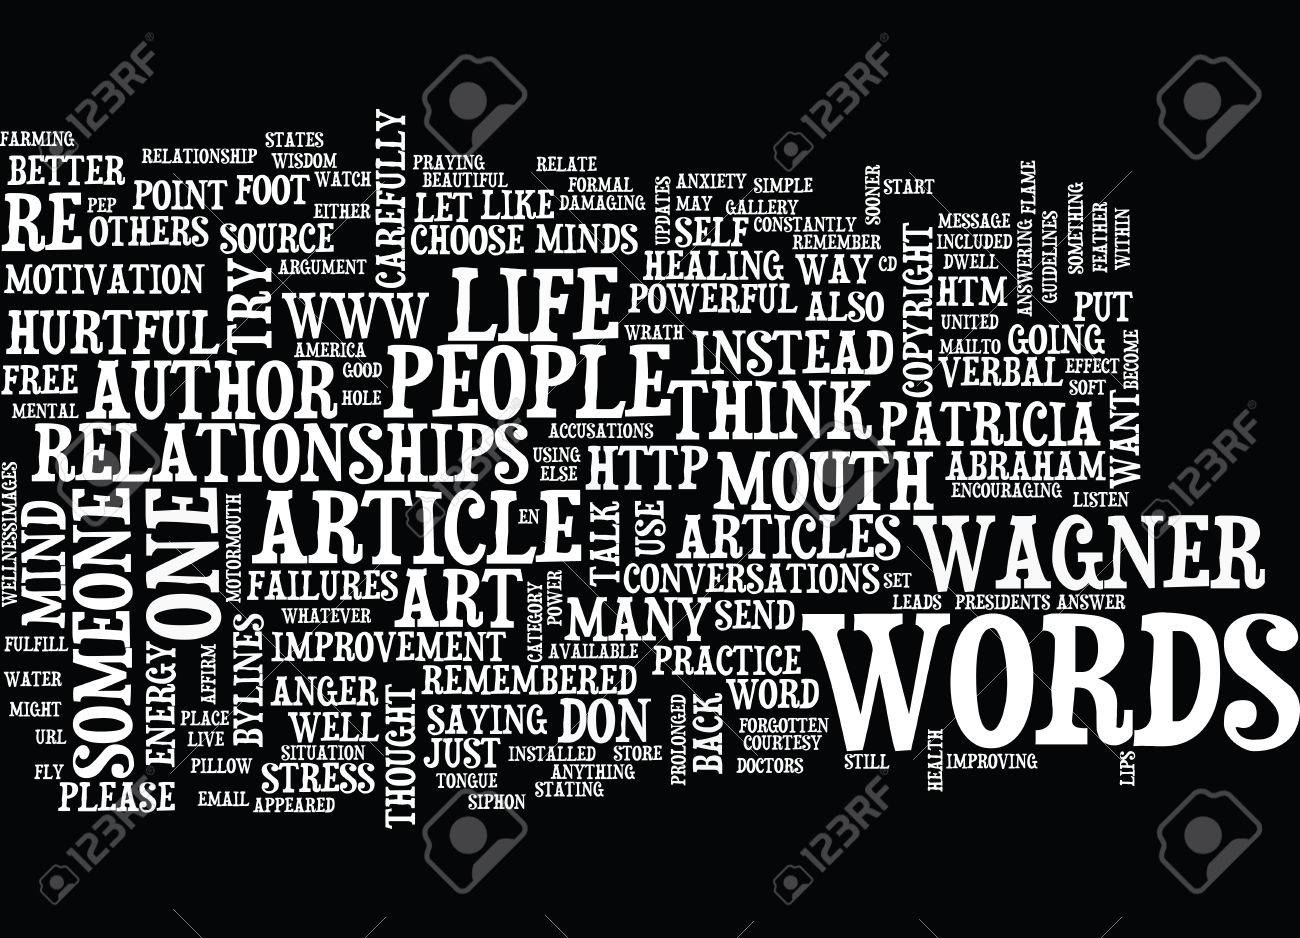 THE POWER OF HEALTHY WORDS Text Background Word Cloud Concept 1300x938